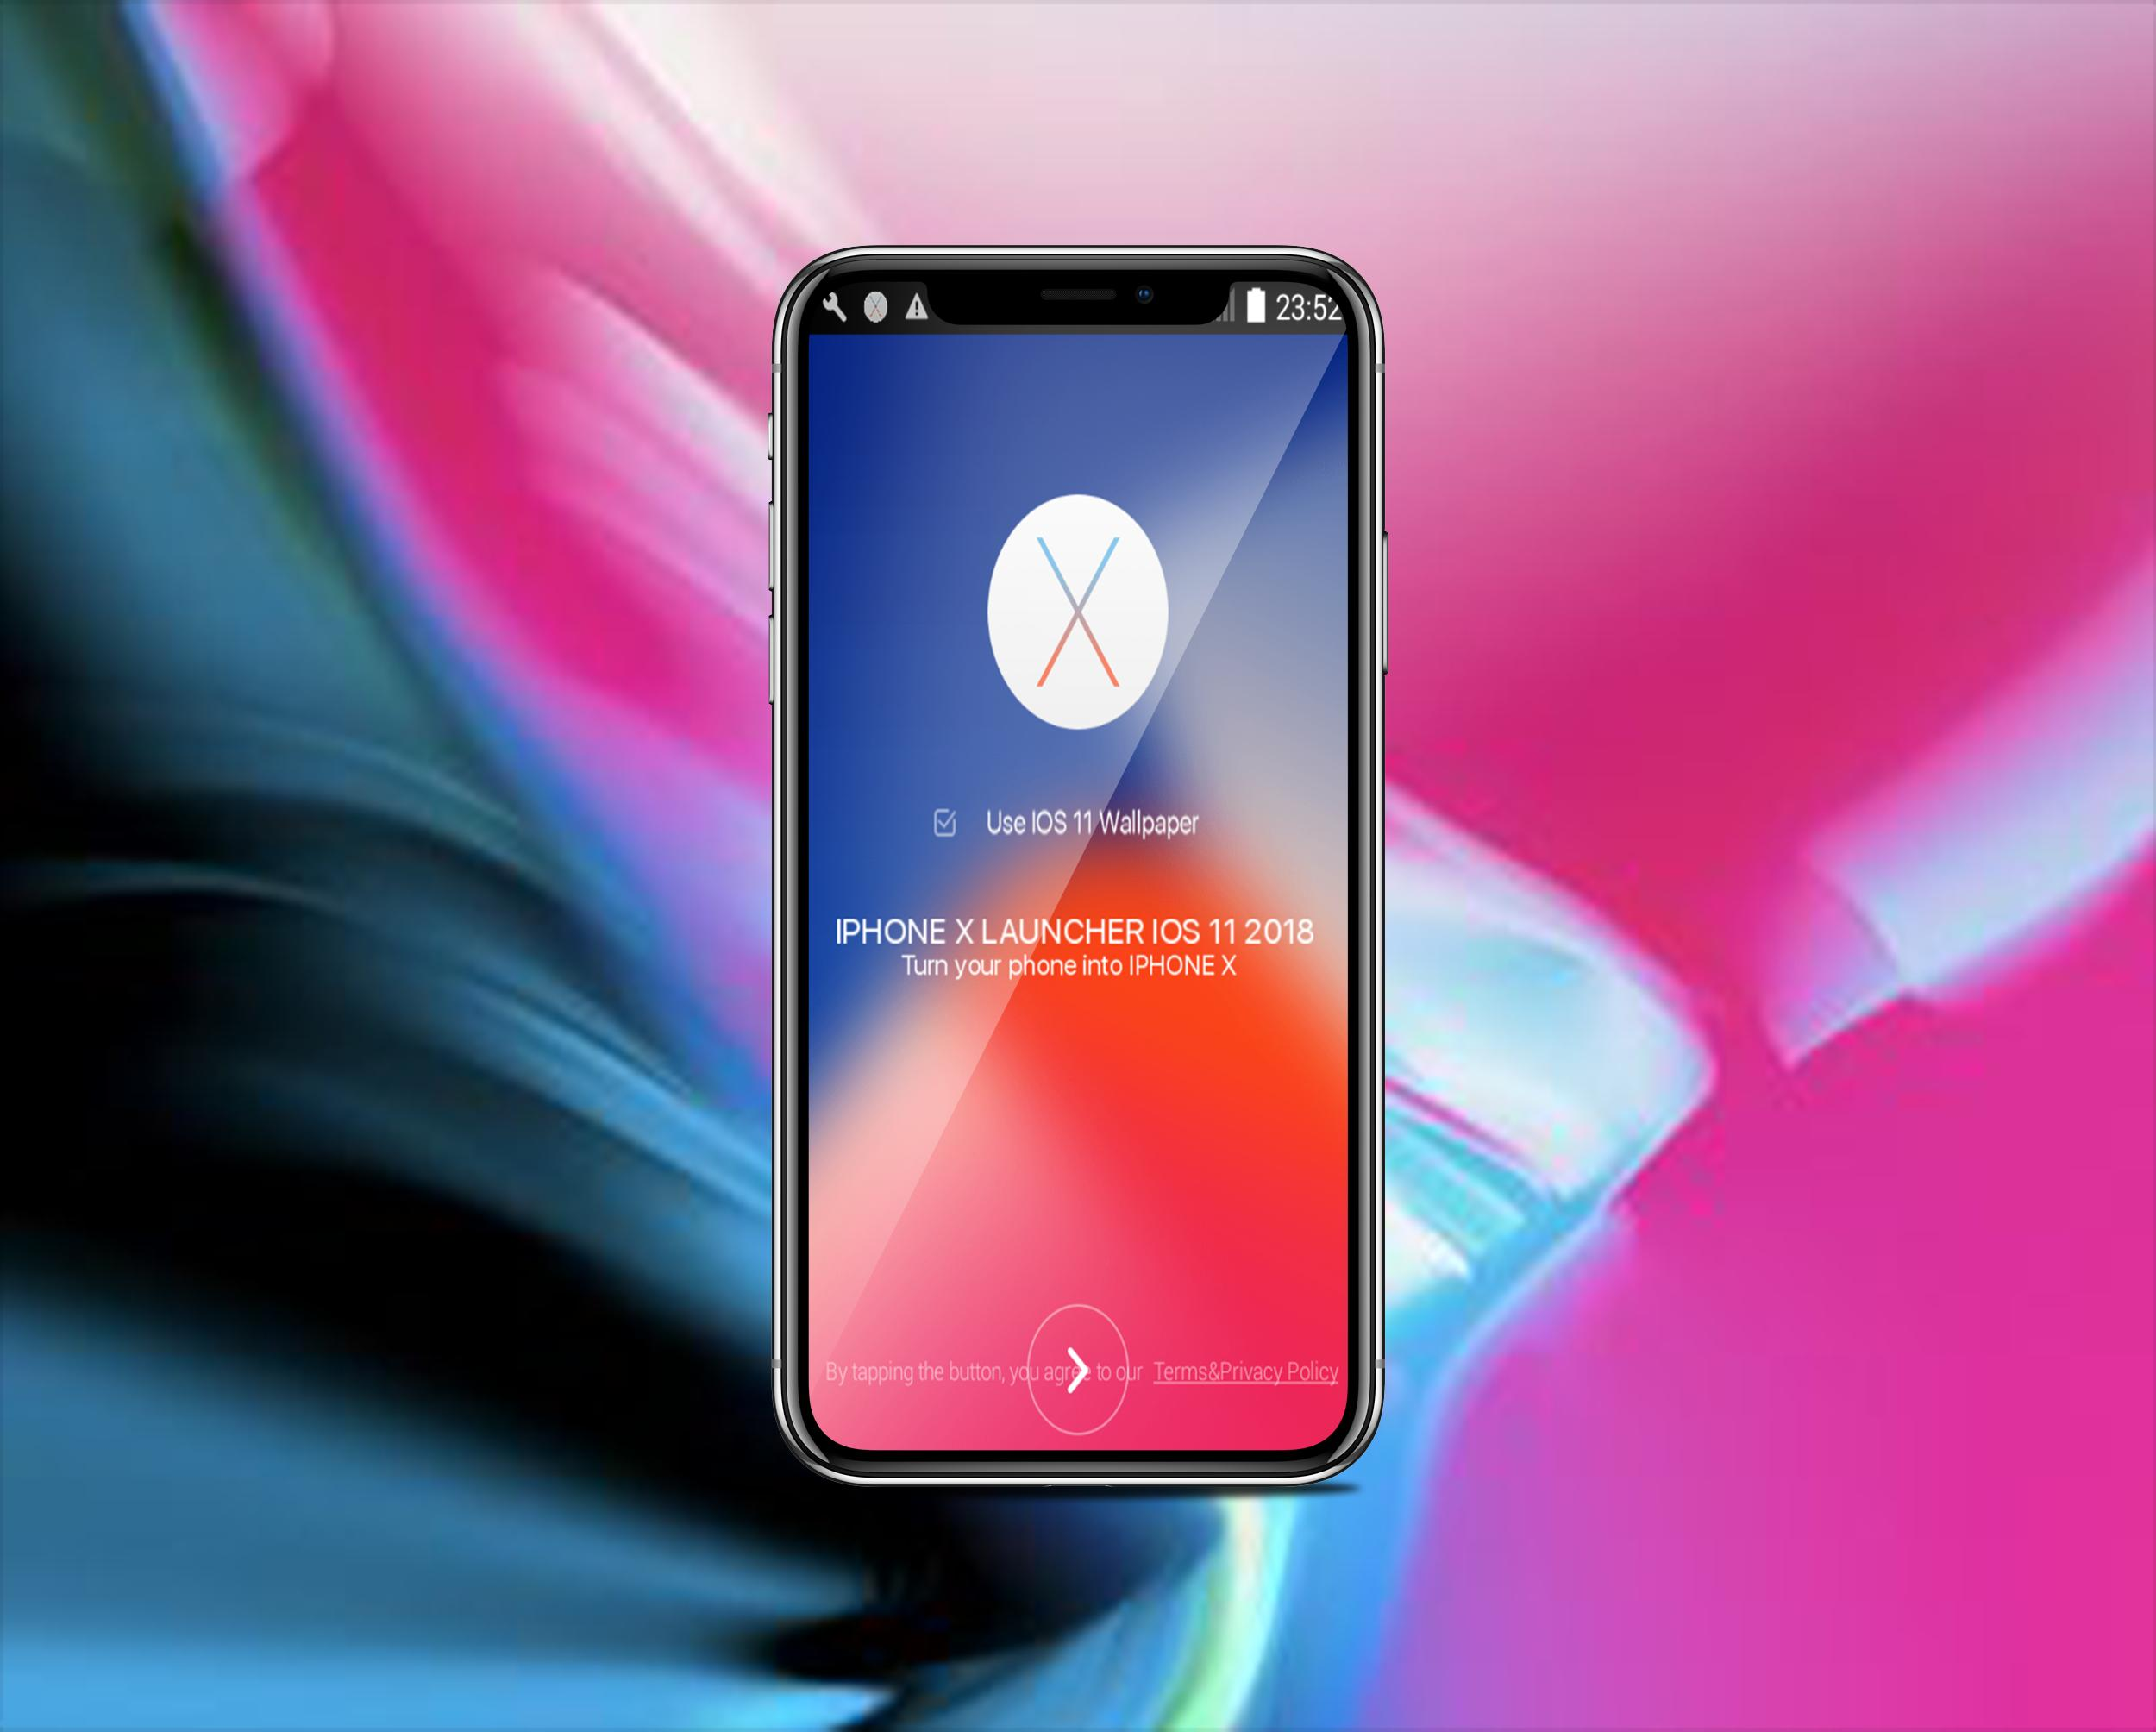 Iphone X Launcher Ios 11 2018 For Android Apk Download